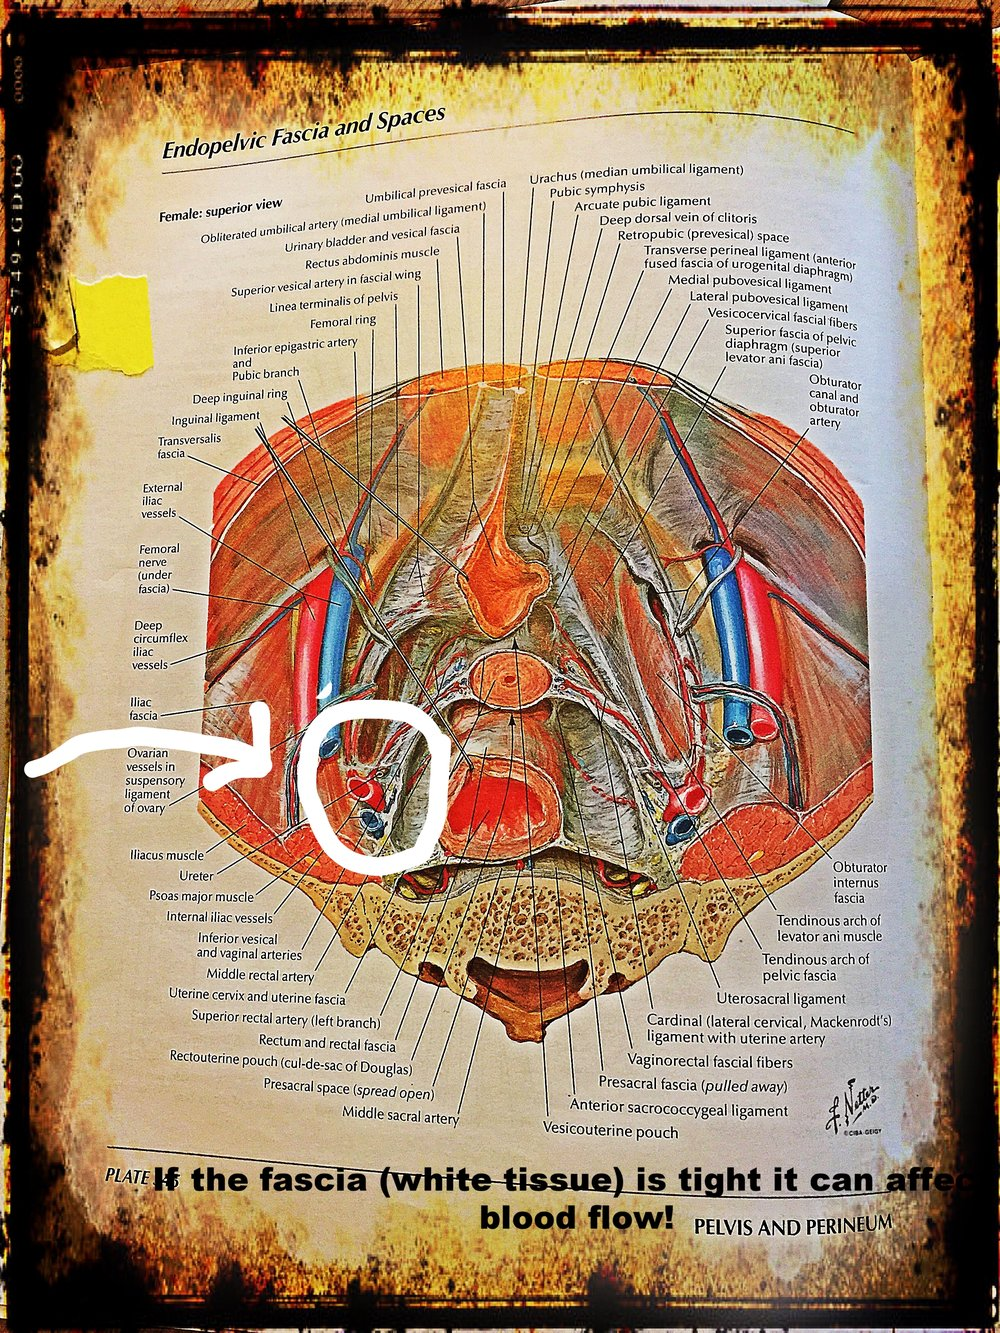 Special thanks to Dr. Frank Netter for spending his life creating such amazing anatomy drawings for geeks like me!